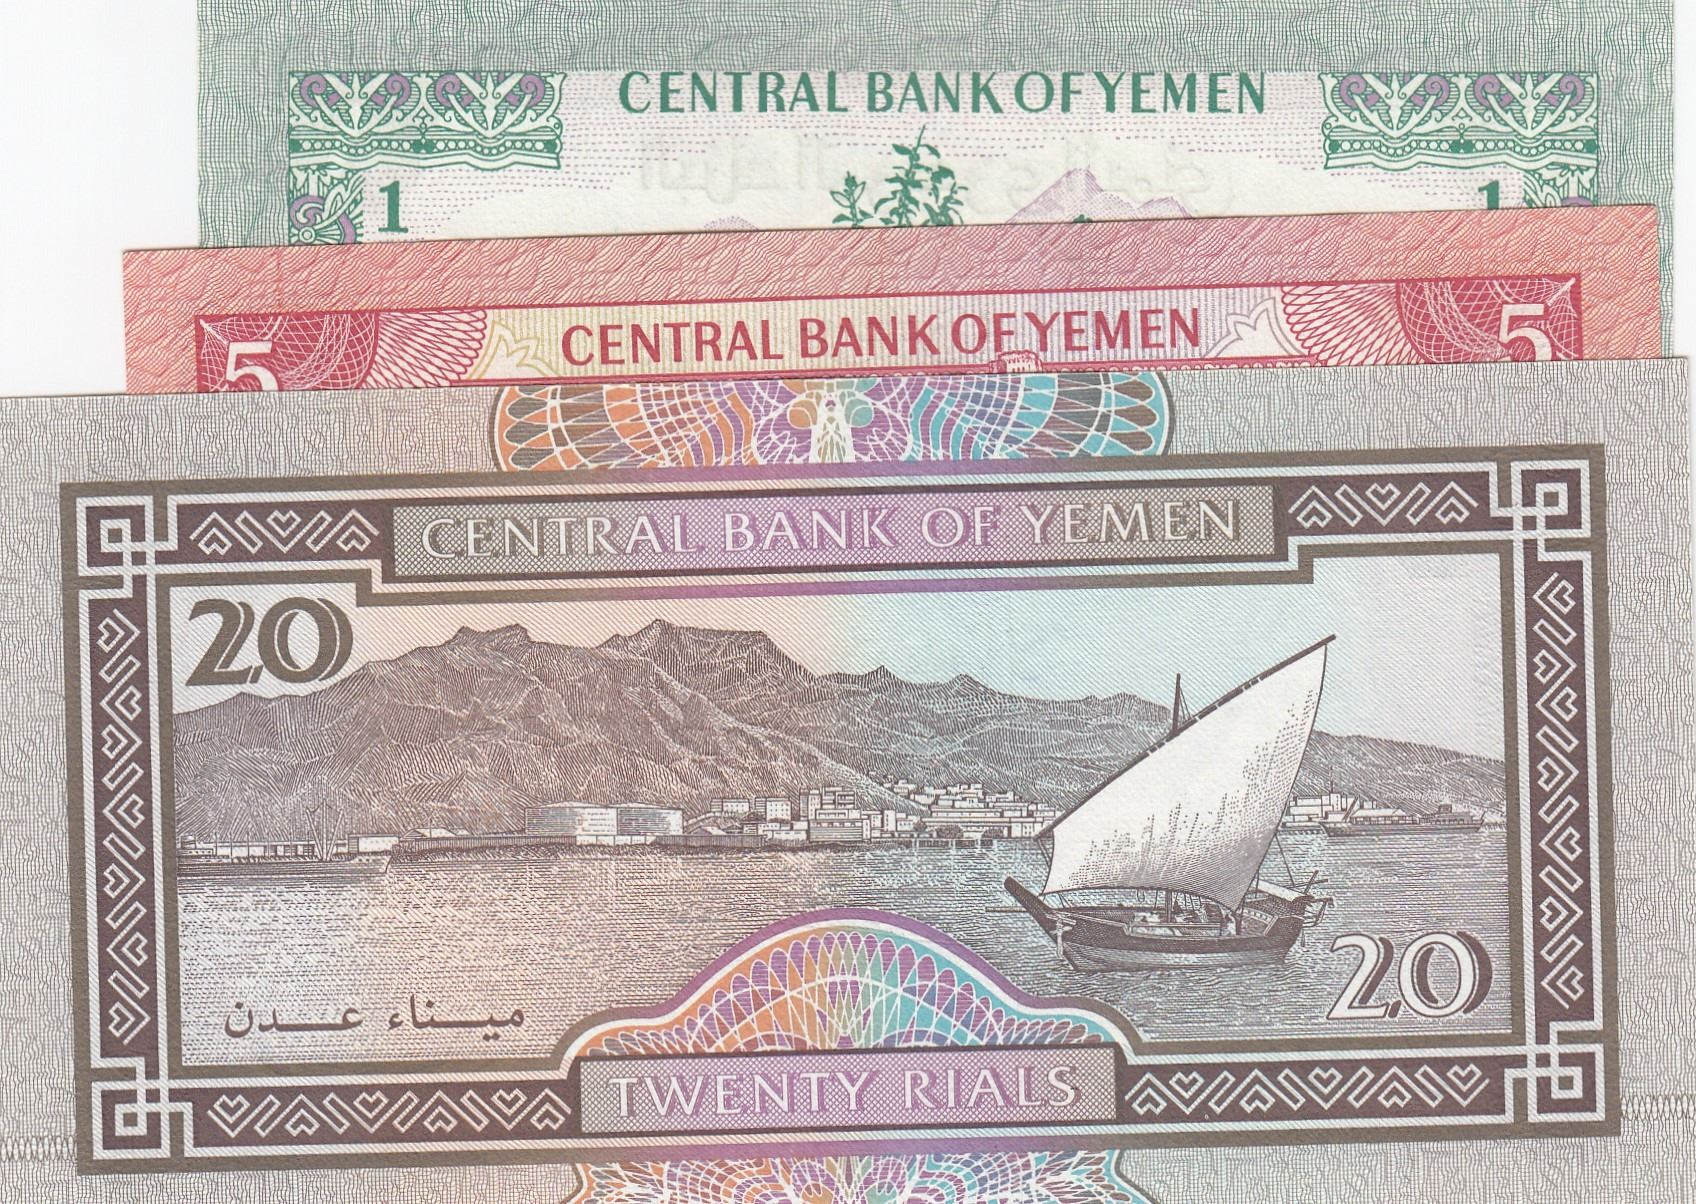 world//lot P29 1996 Yemen 200 rial note UNC Combined Shipping